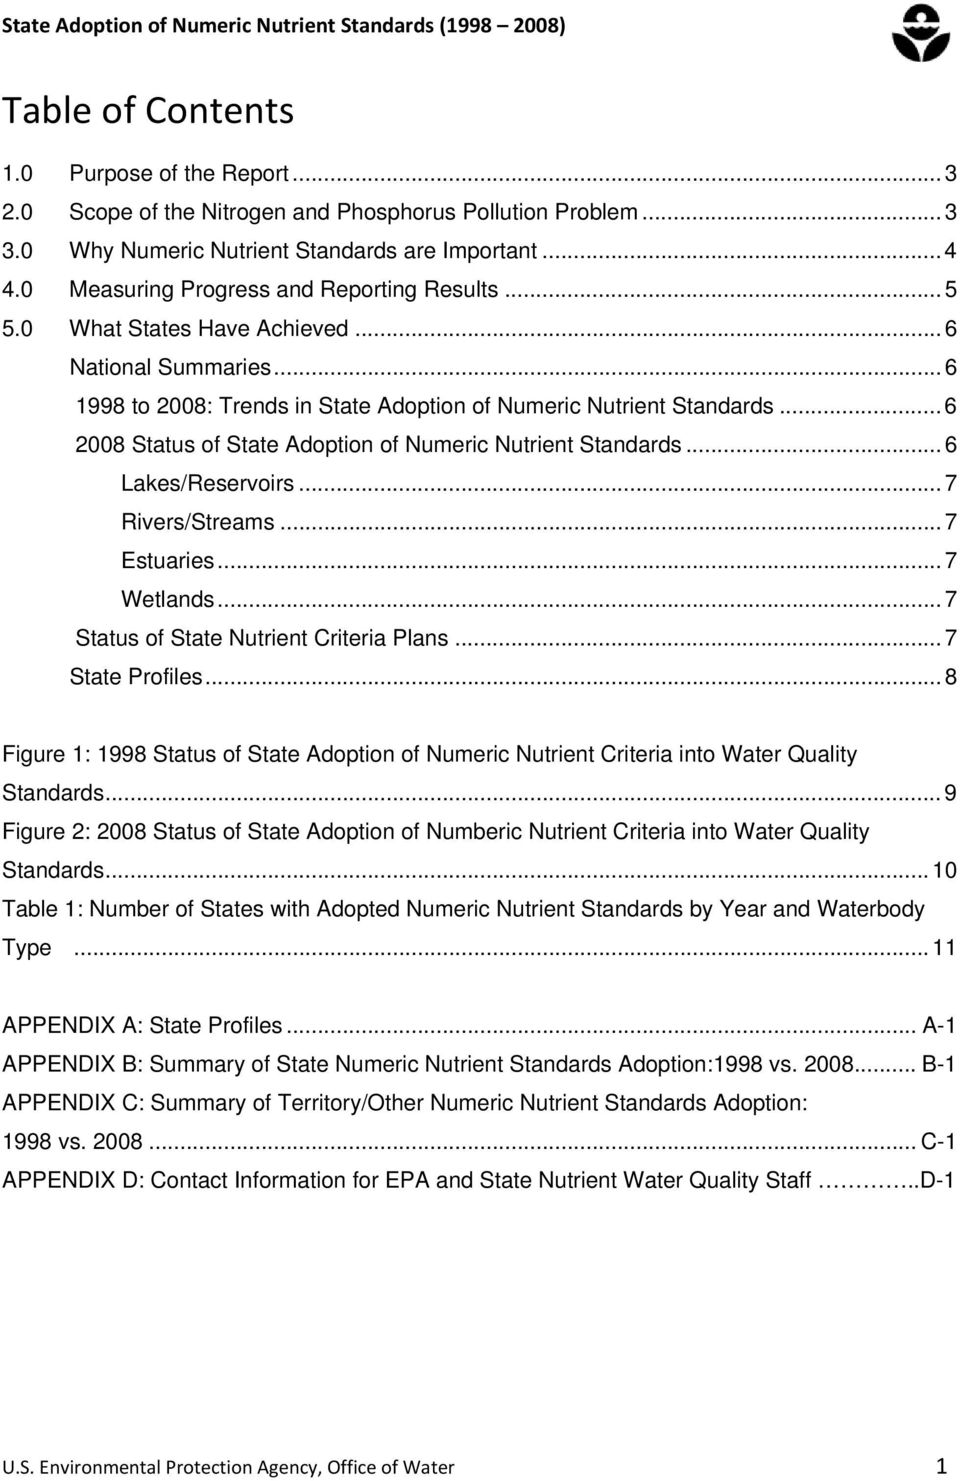 .. 7 Rivers/Streams... 7 Estuaries... 7... 7 Status of State s... 7 State Profiles... 8 Figure : 998 Status of State Adoption of Numeric Nutrient Criteria into Water Quality.